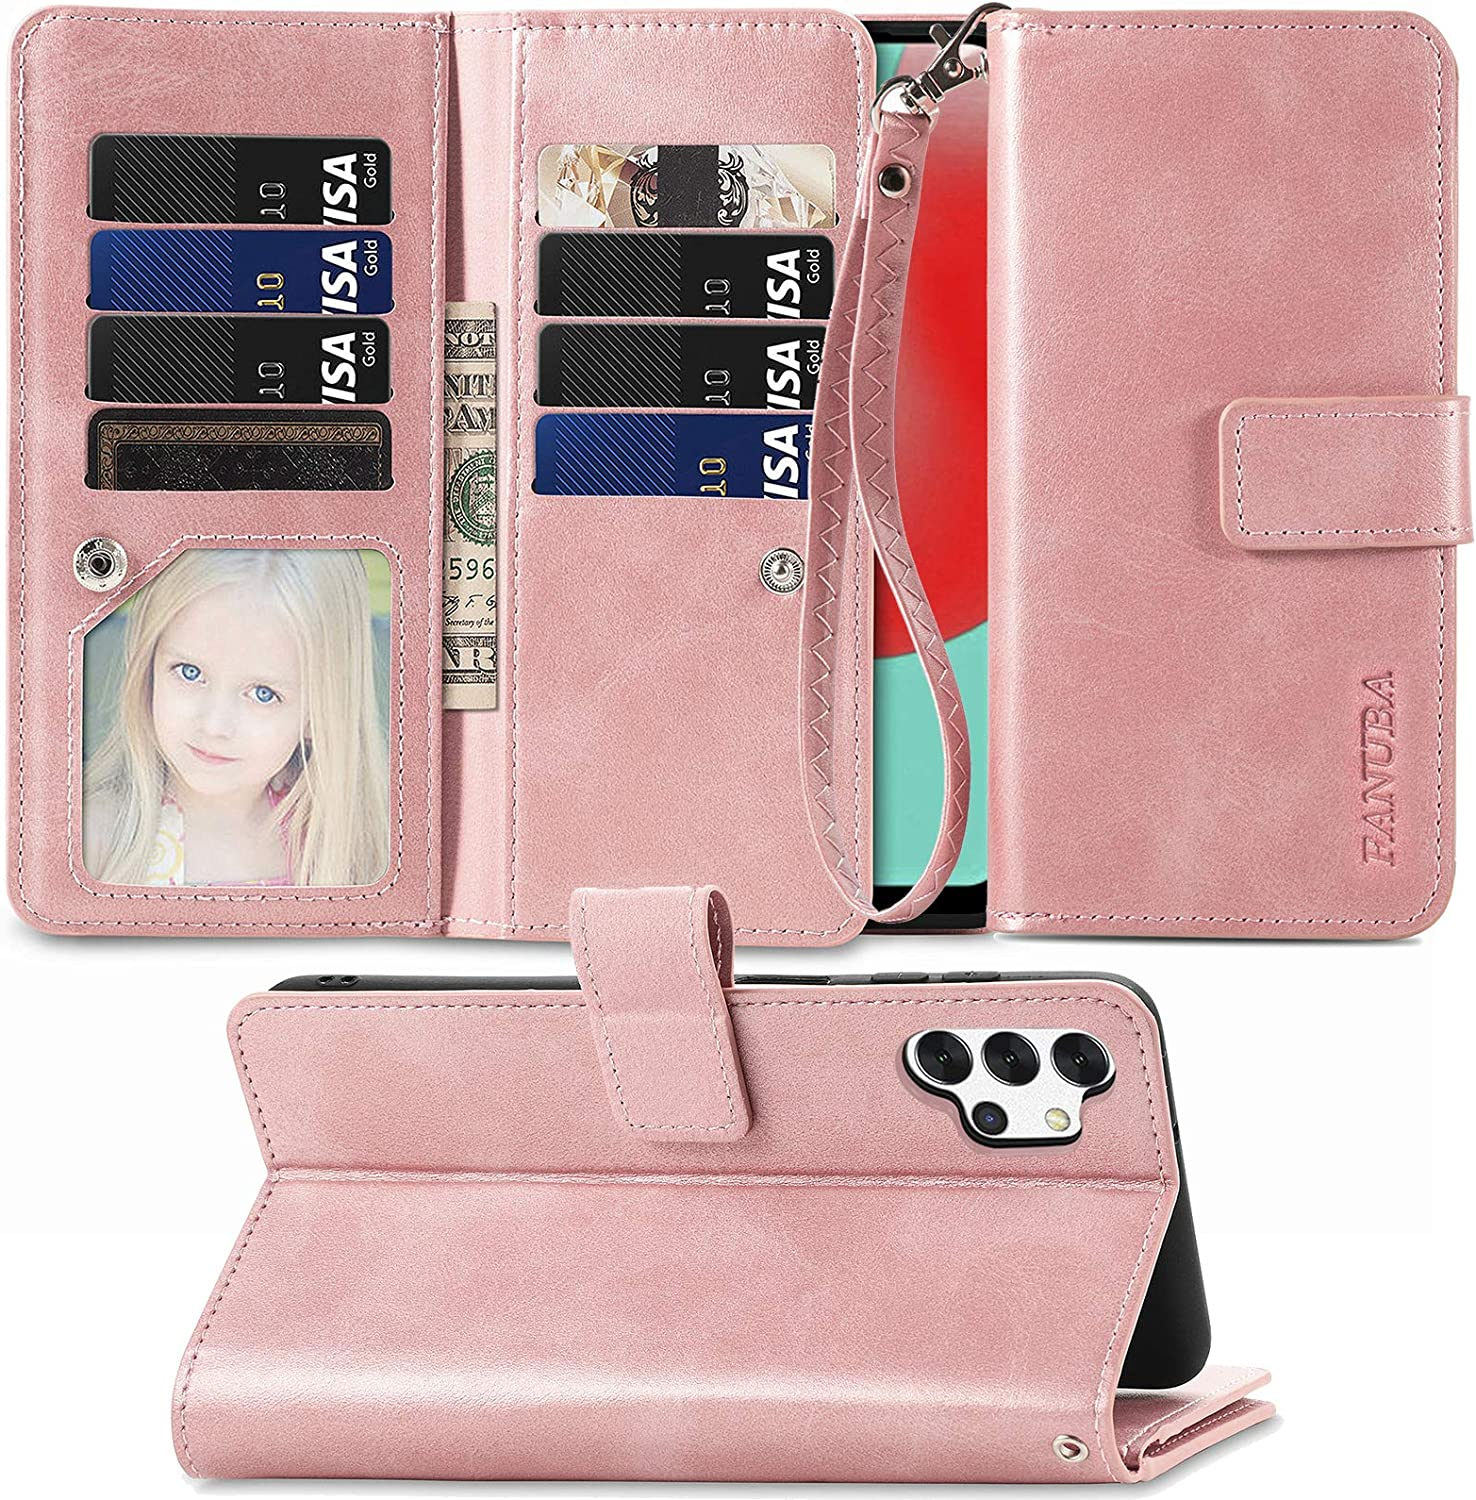 FANUBA for Galaxy A32 5G Wallet Phone Case,Soft PU Leather Magnetic Buttons Wrist Strap Card Holders Shockproof Kickstand Protective [Flip Folio Cover] for Samsung Galaxy A32 5G - Rose Gold